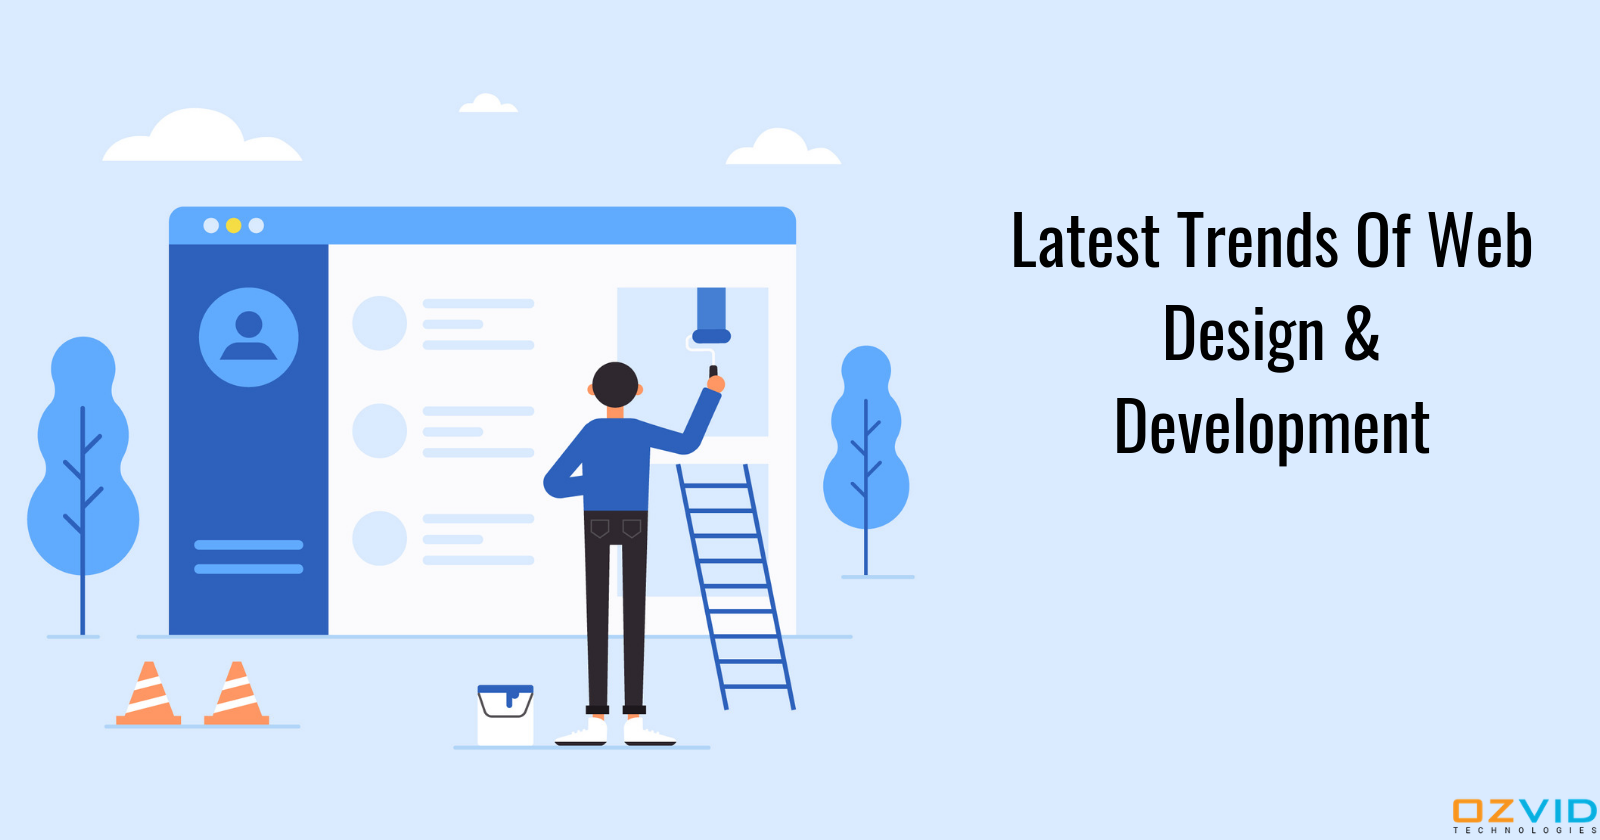 Top Website Design and Development Trends For 2019